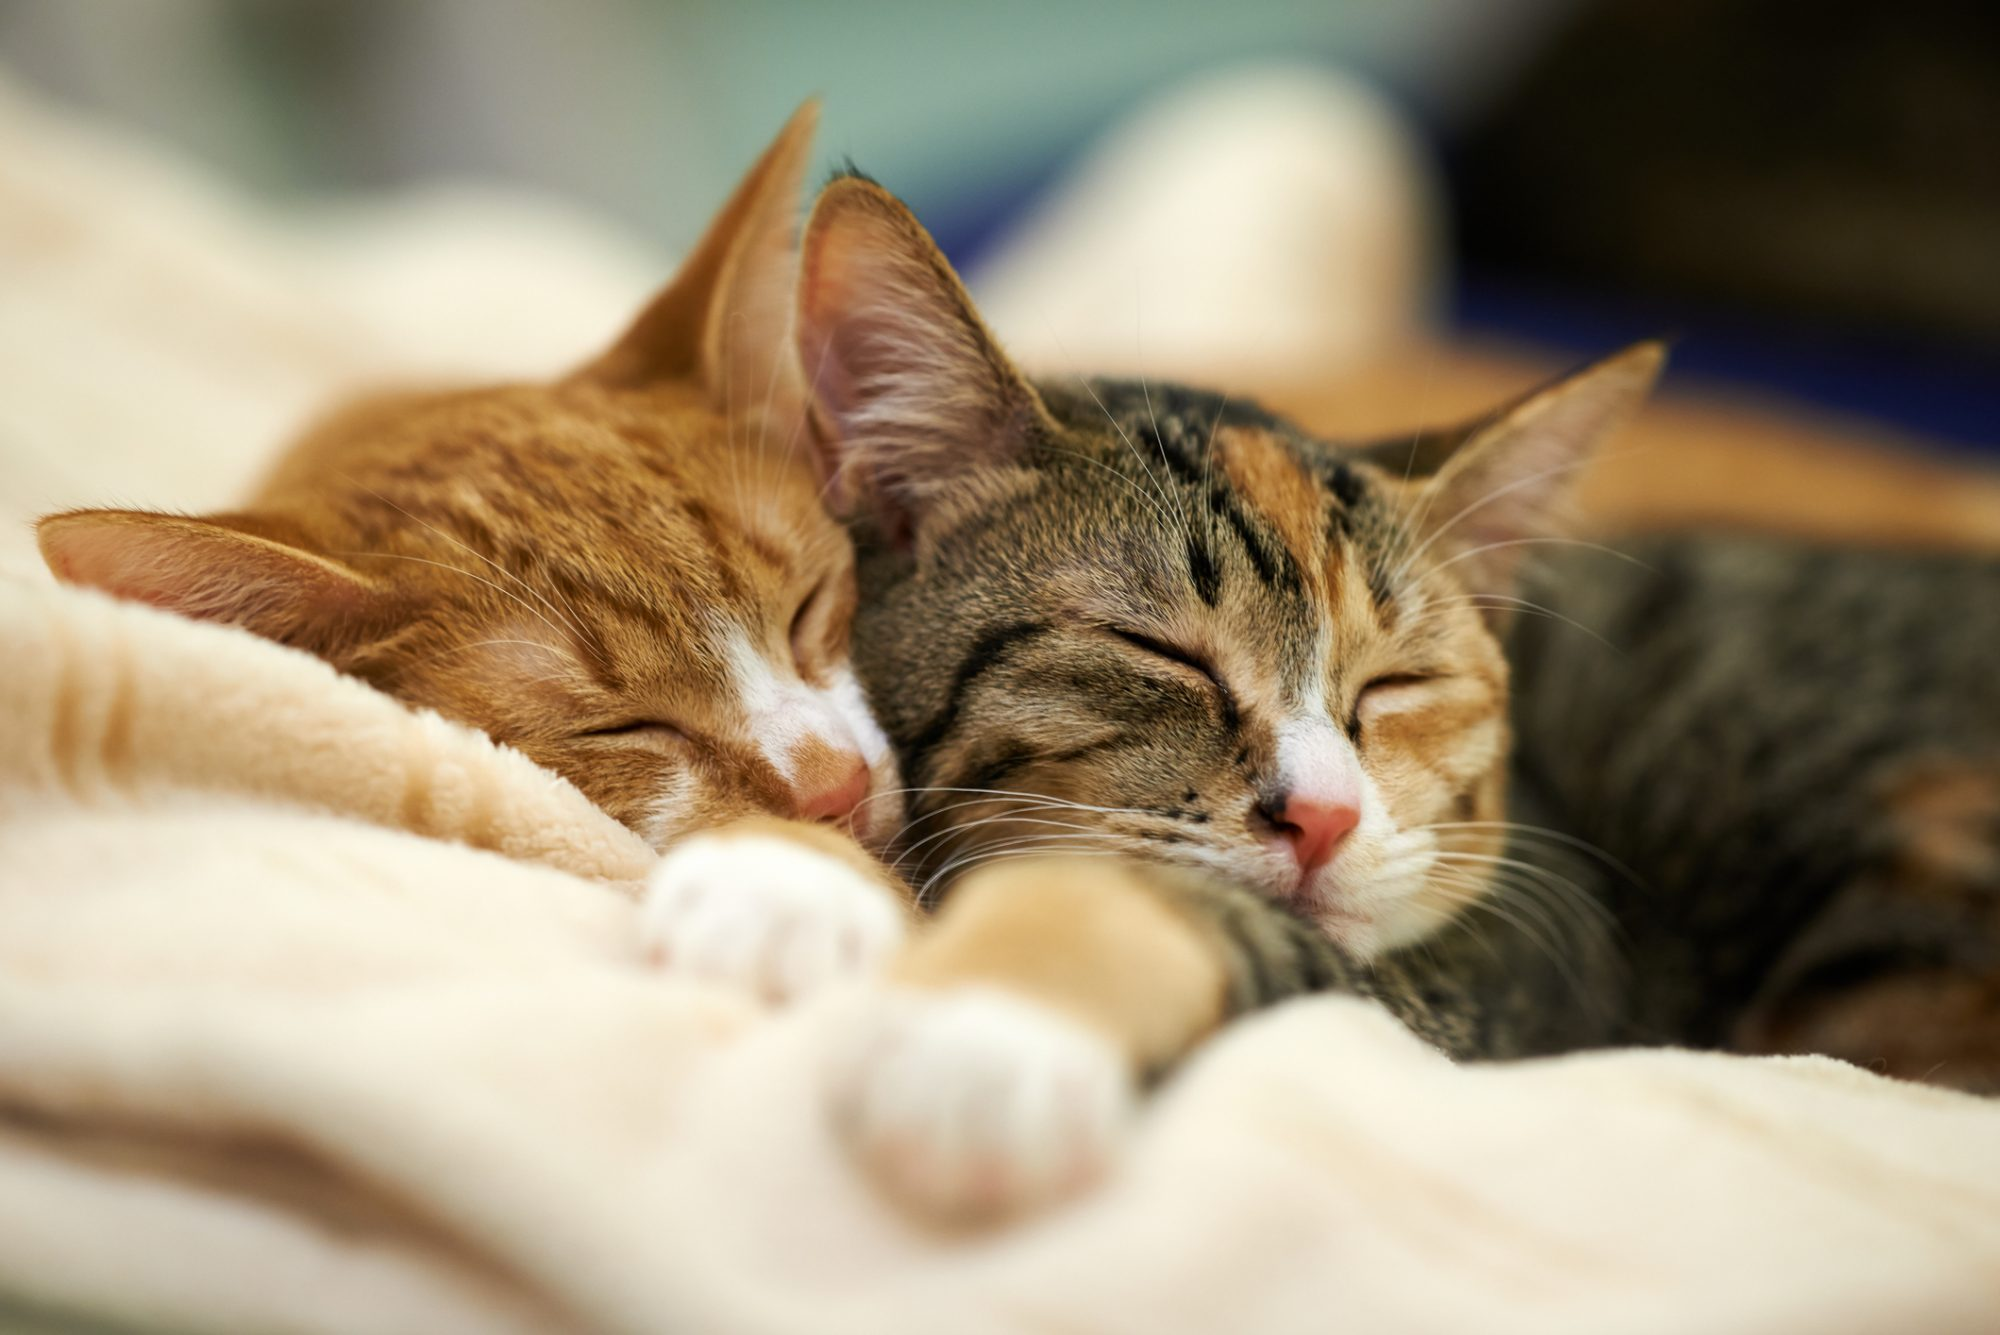 Why Do Cats Sleep So Much? Reasons You Need To Know